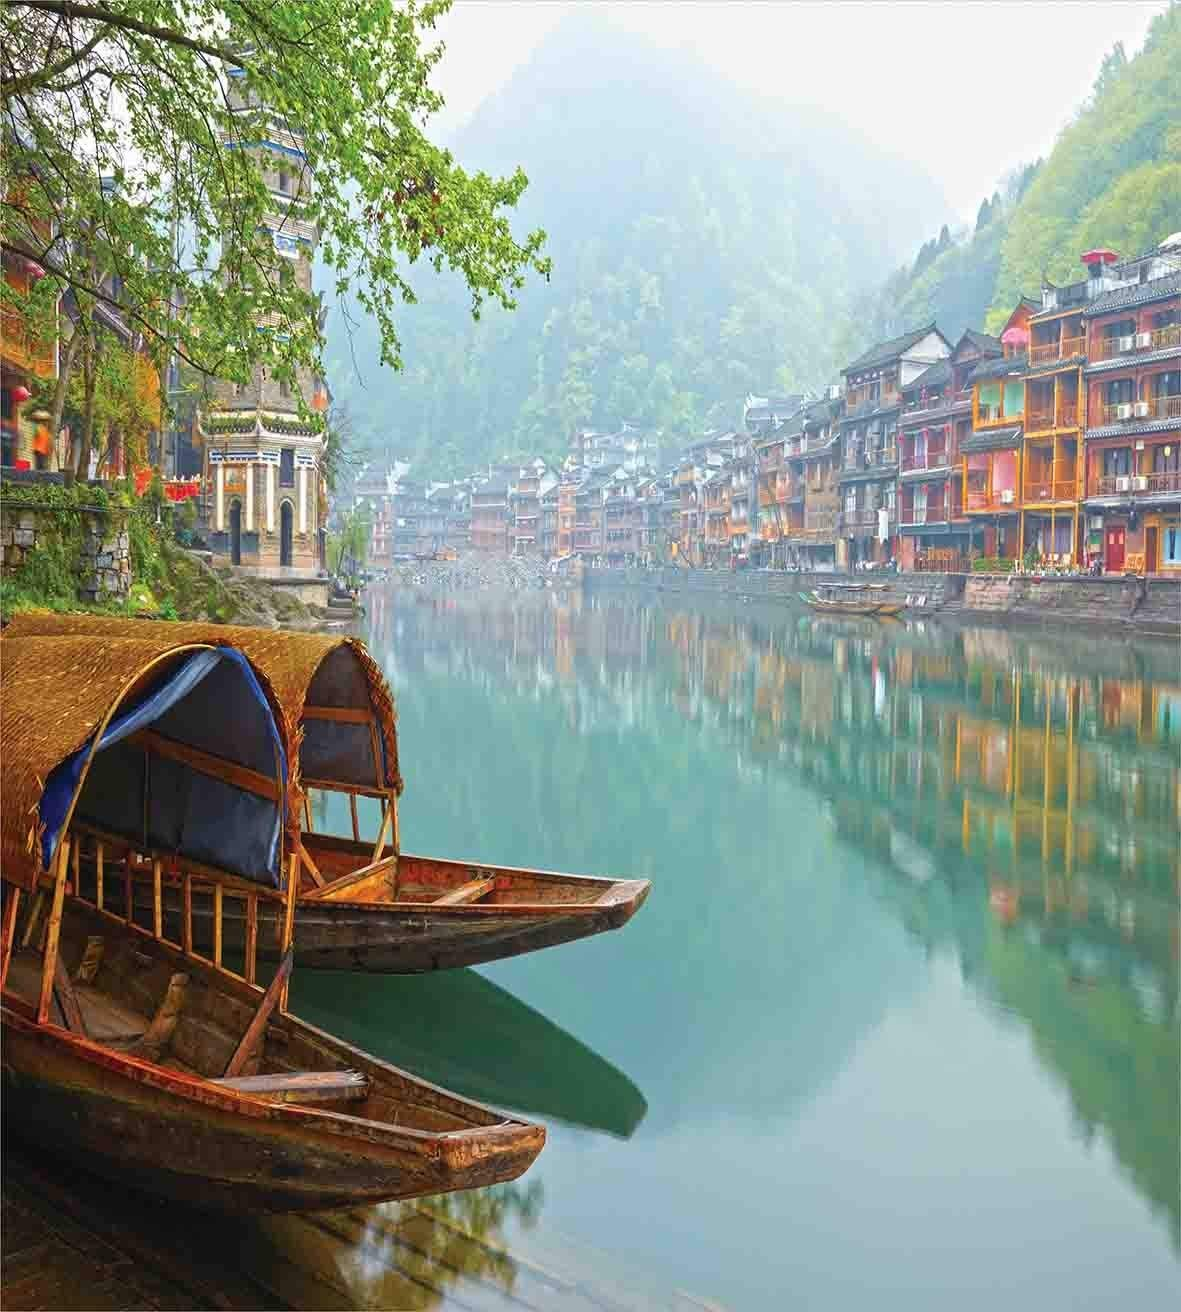 Full Size Asian 3 PCS Duvet Cover Set, Old Chinese Suburbs Lake Canal with Wood Boats Foggy Asian Eastern Rural Scene Art, Bedding Set Bedspread for Children/Teens/Adults/Kids, Multicolor by Anzona (Image #2)